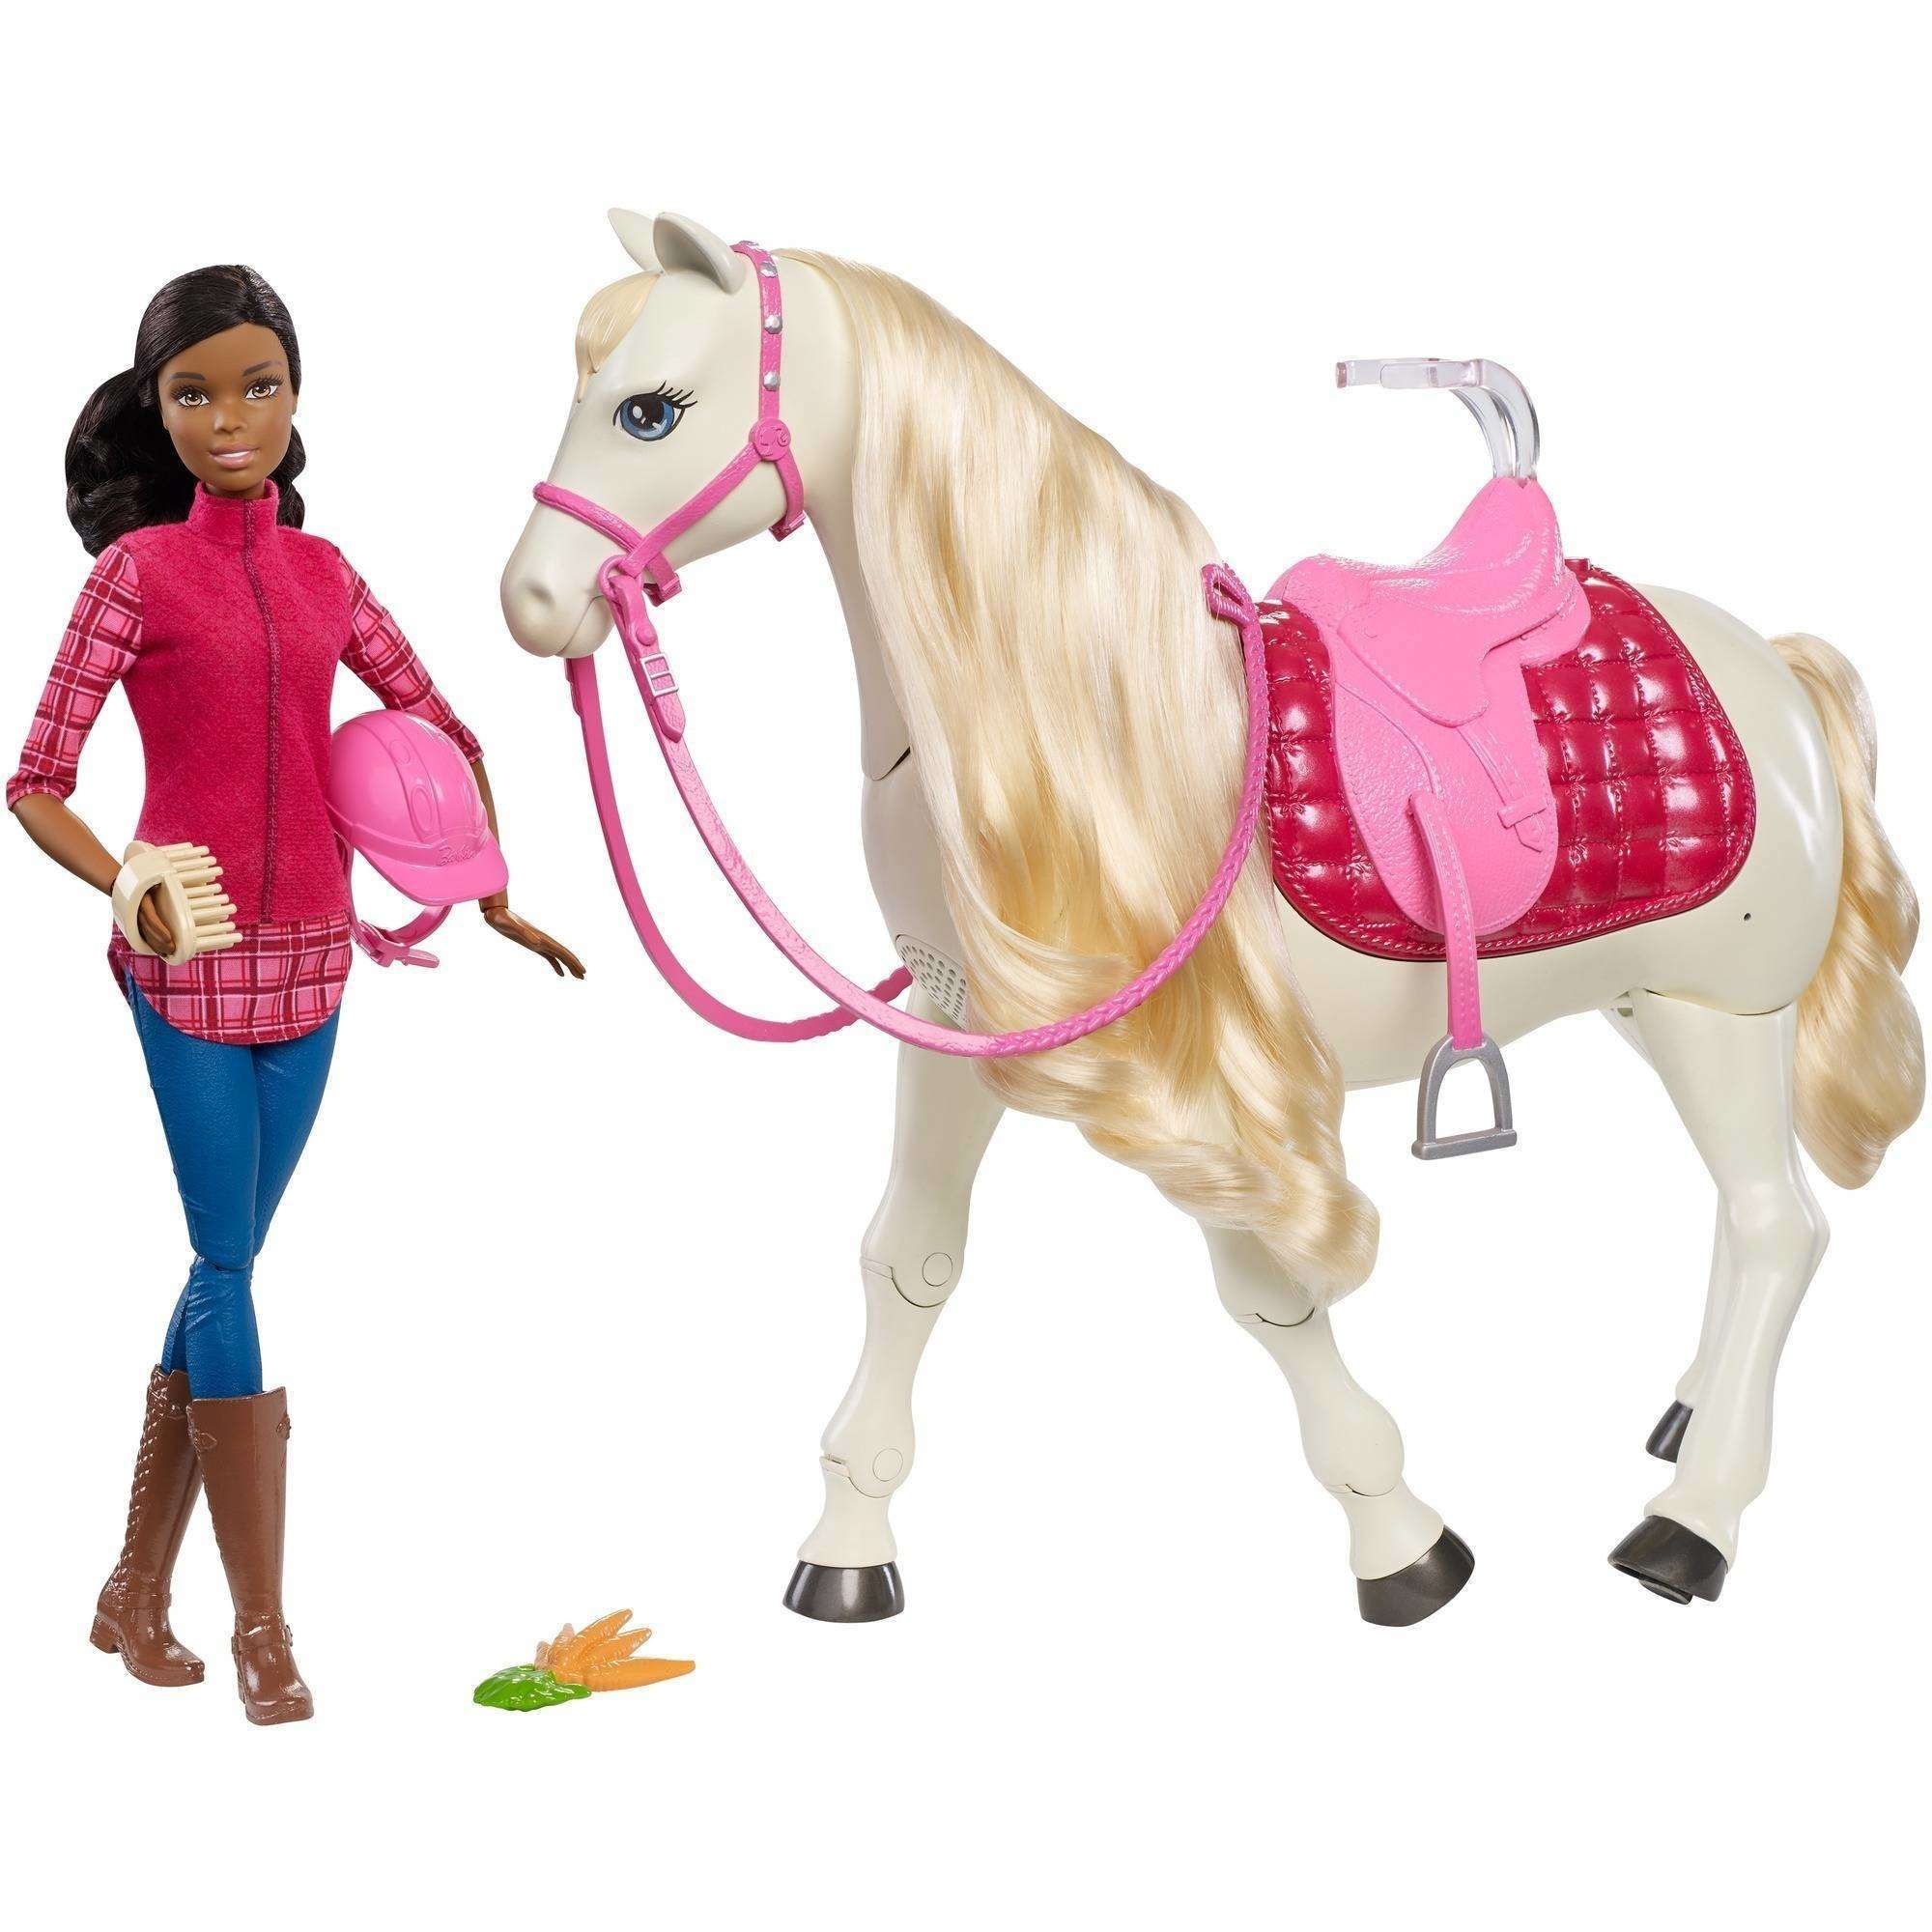 Barbie DreamHorse and Nikki Doll